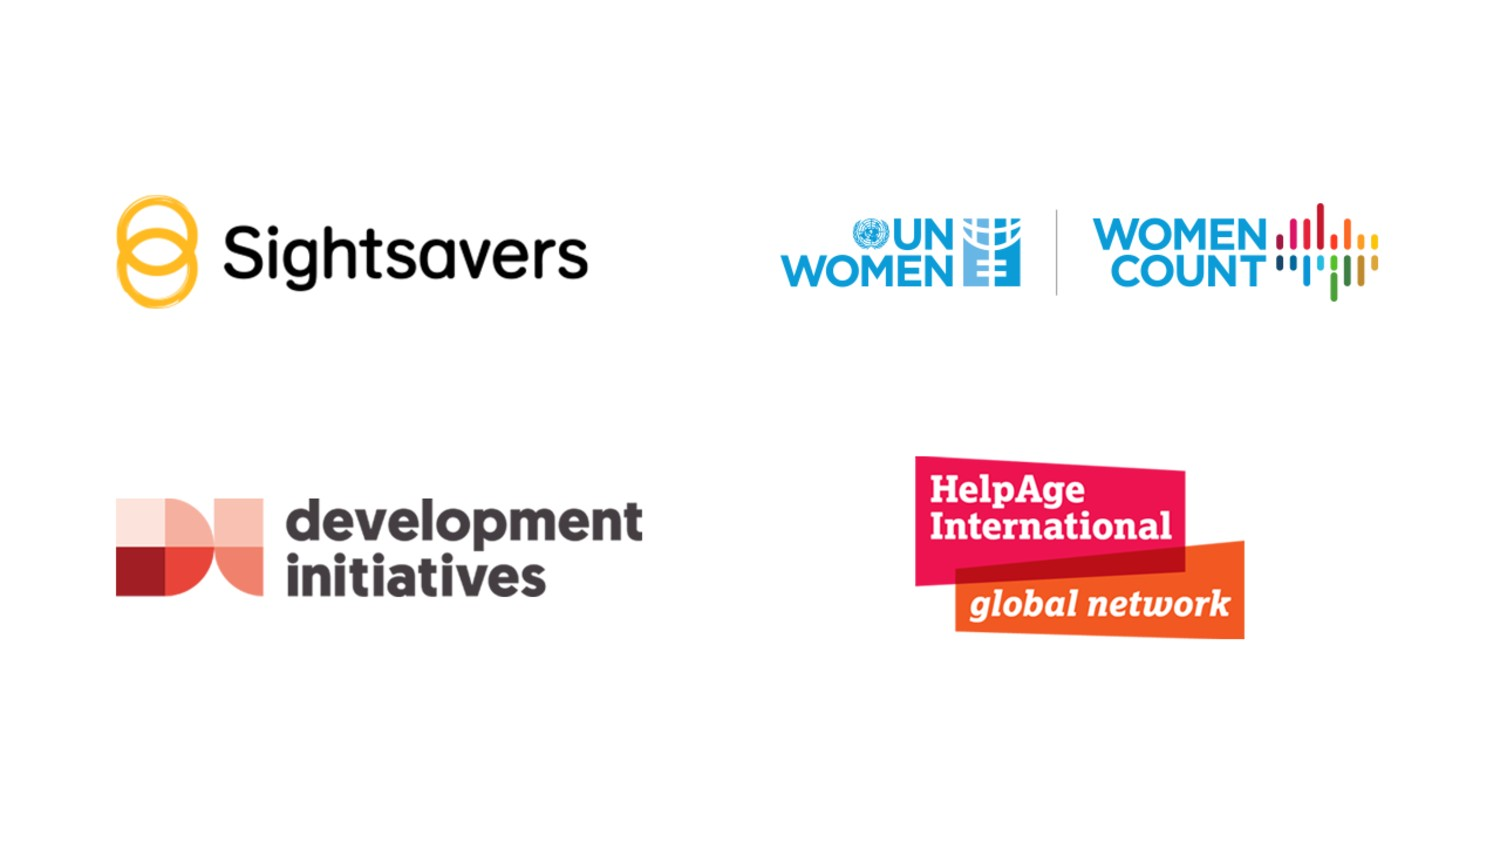 A collection of logos, for Sightsavers, development initiatives, UN Women, and HelpAge International